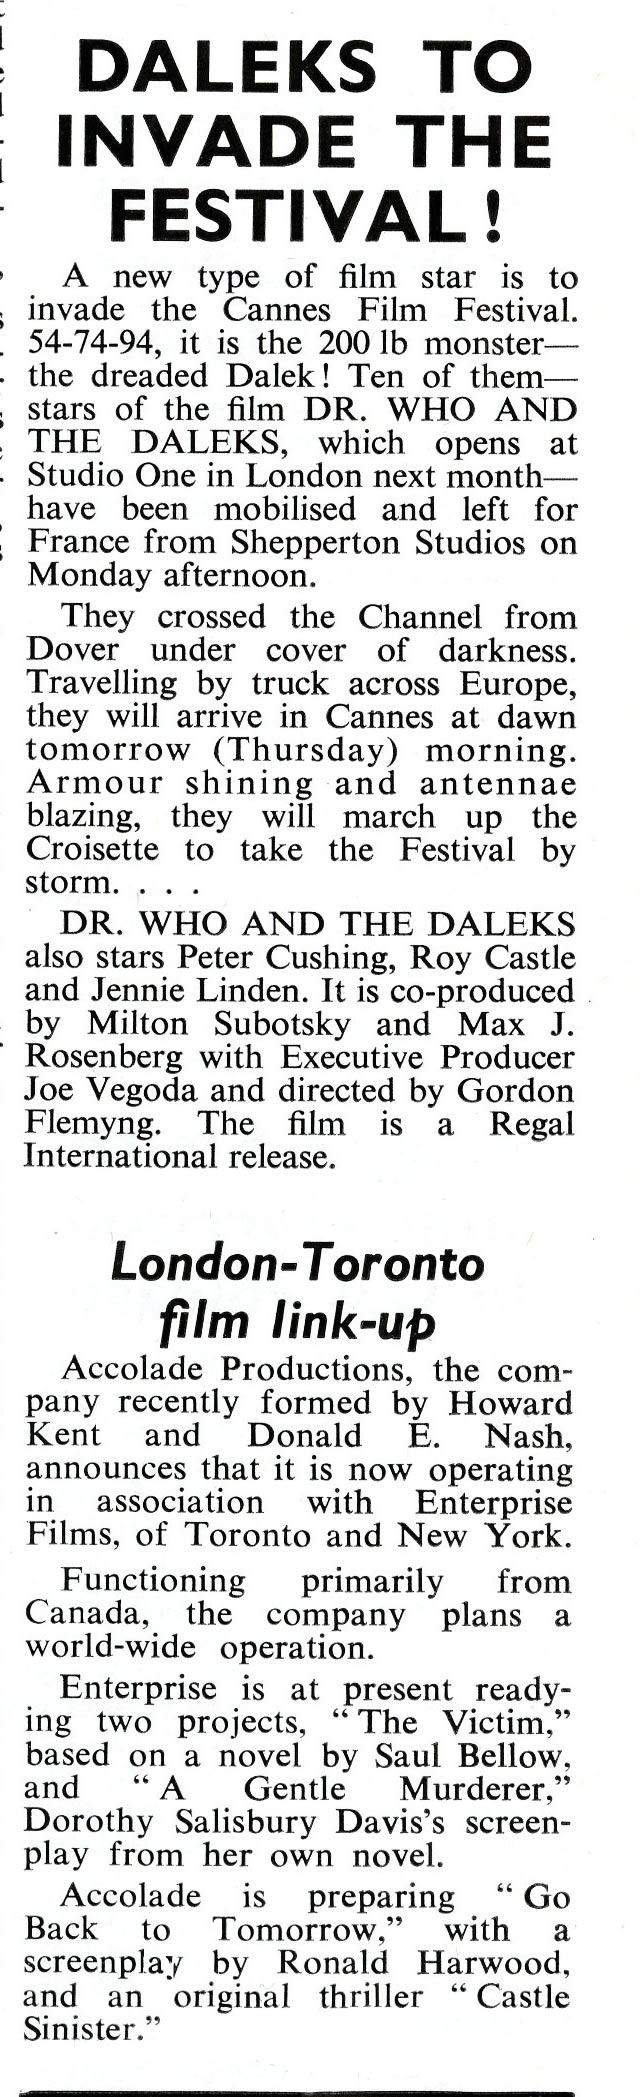 Daily Cinema, 19 May 1965